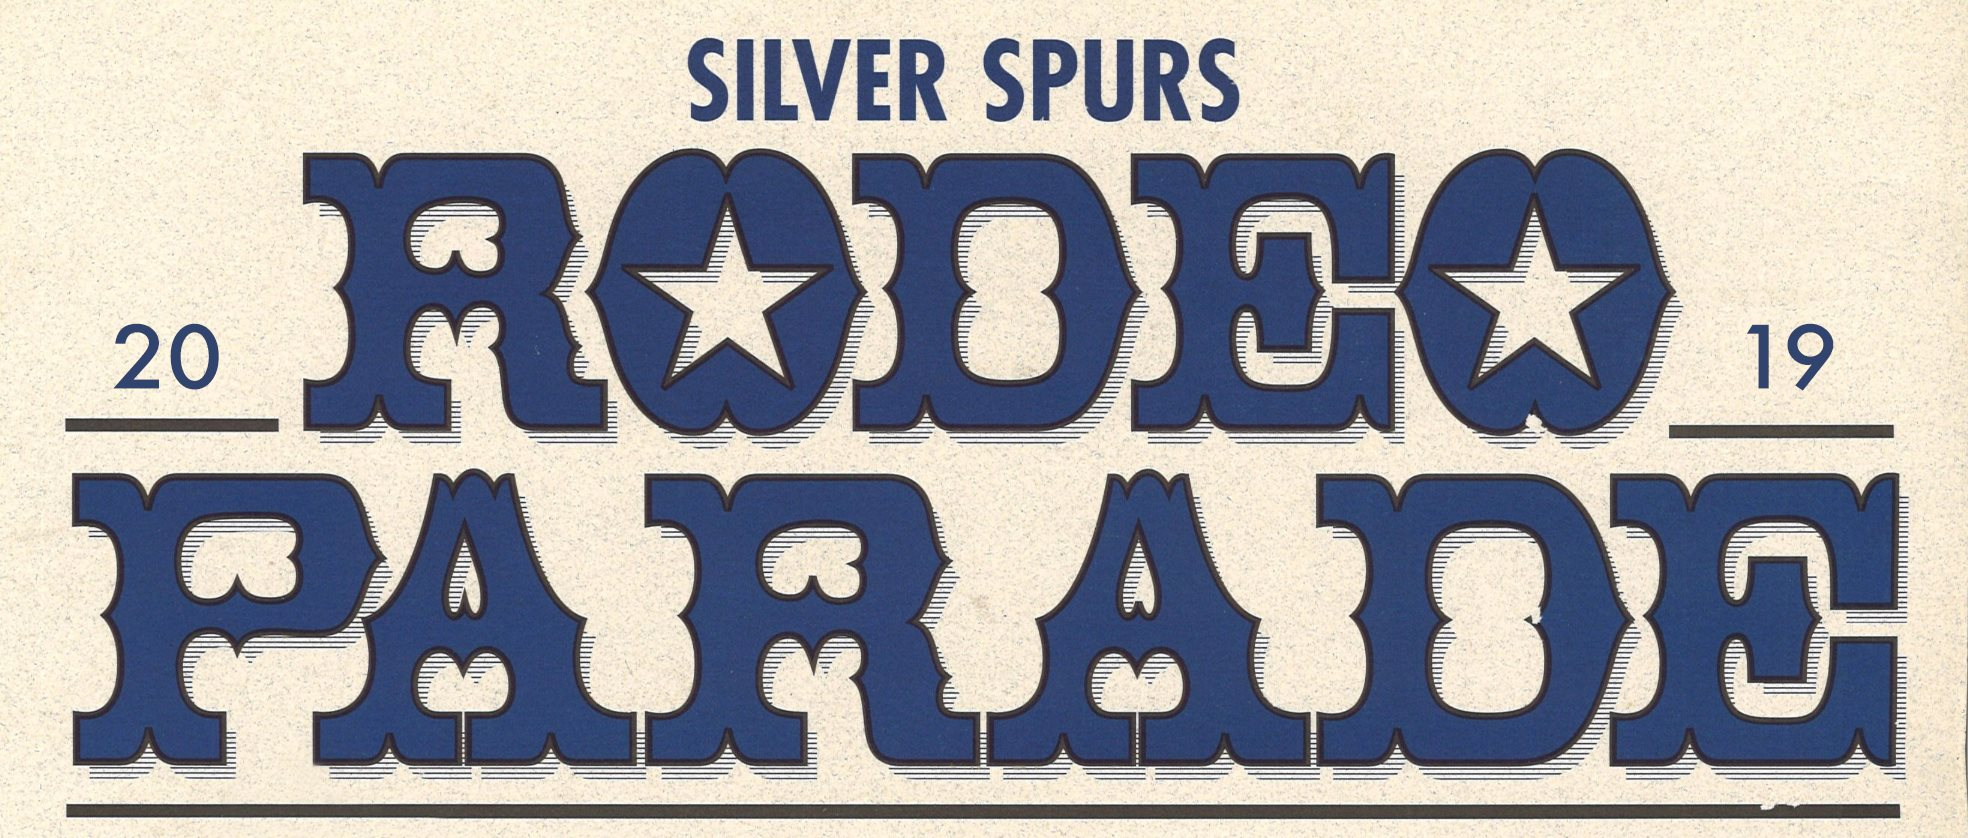 Silver Spurs Rodeo 75th Anniversary Parade